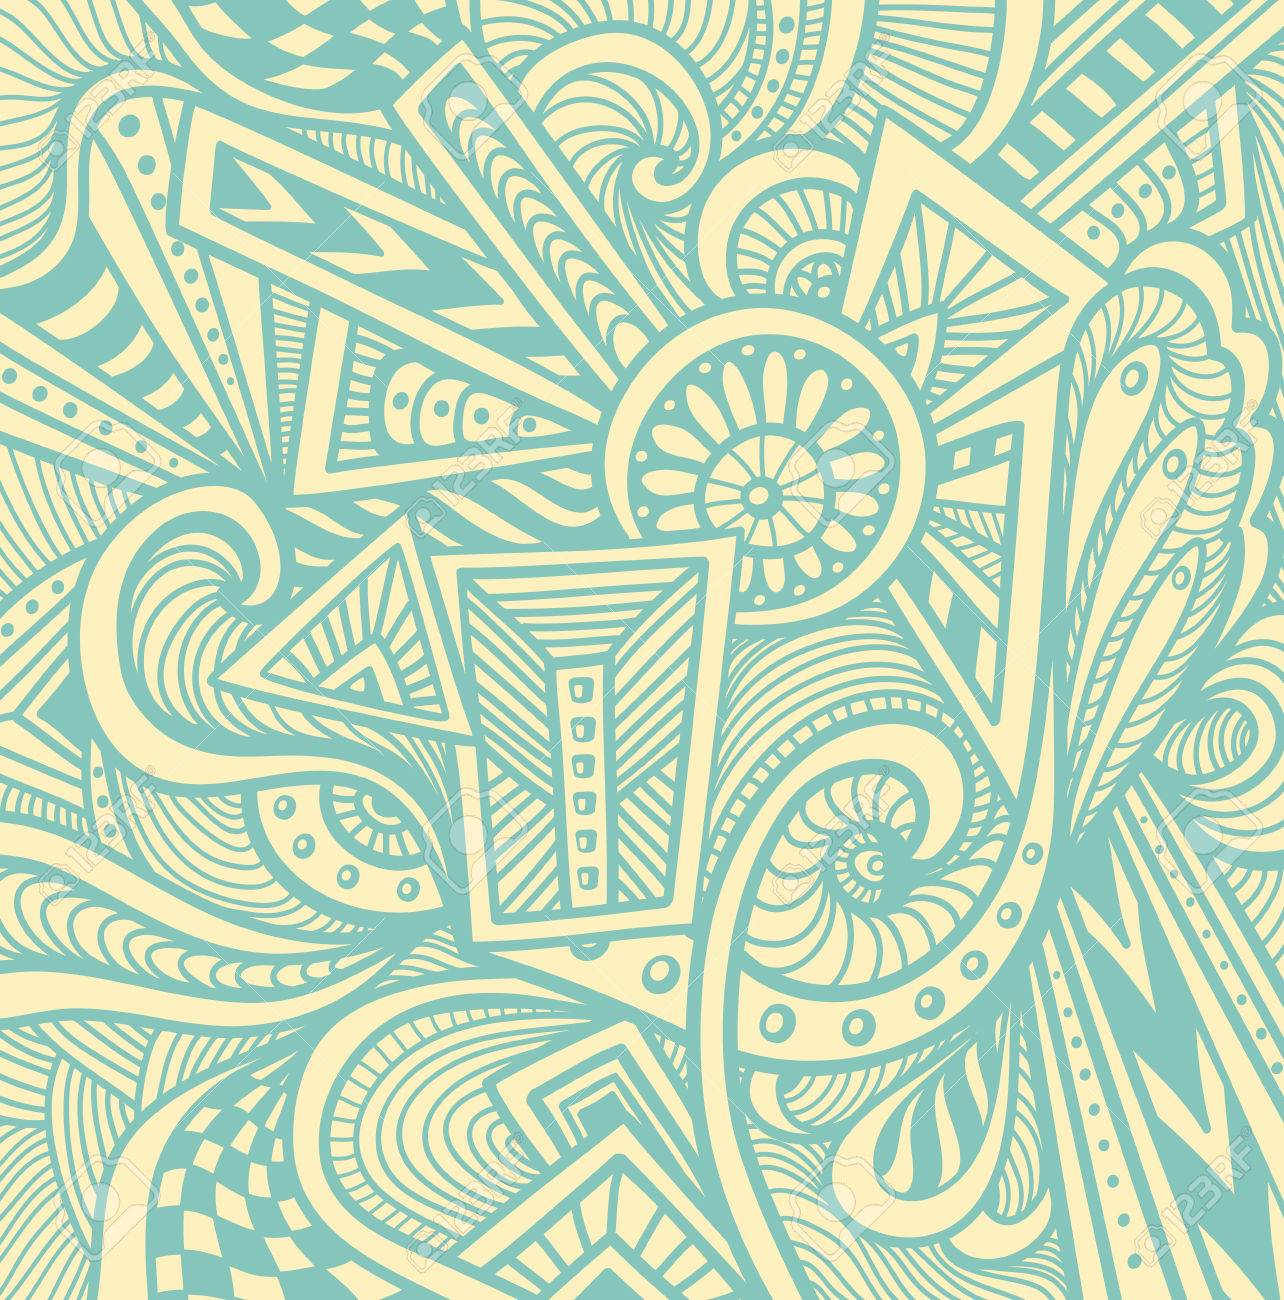 Abstract Pattern In Zen Tangle Or Doodle Style Beige Light Blue For Wallpaper